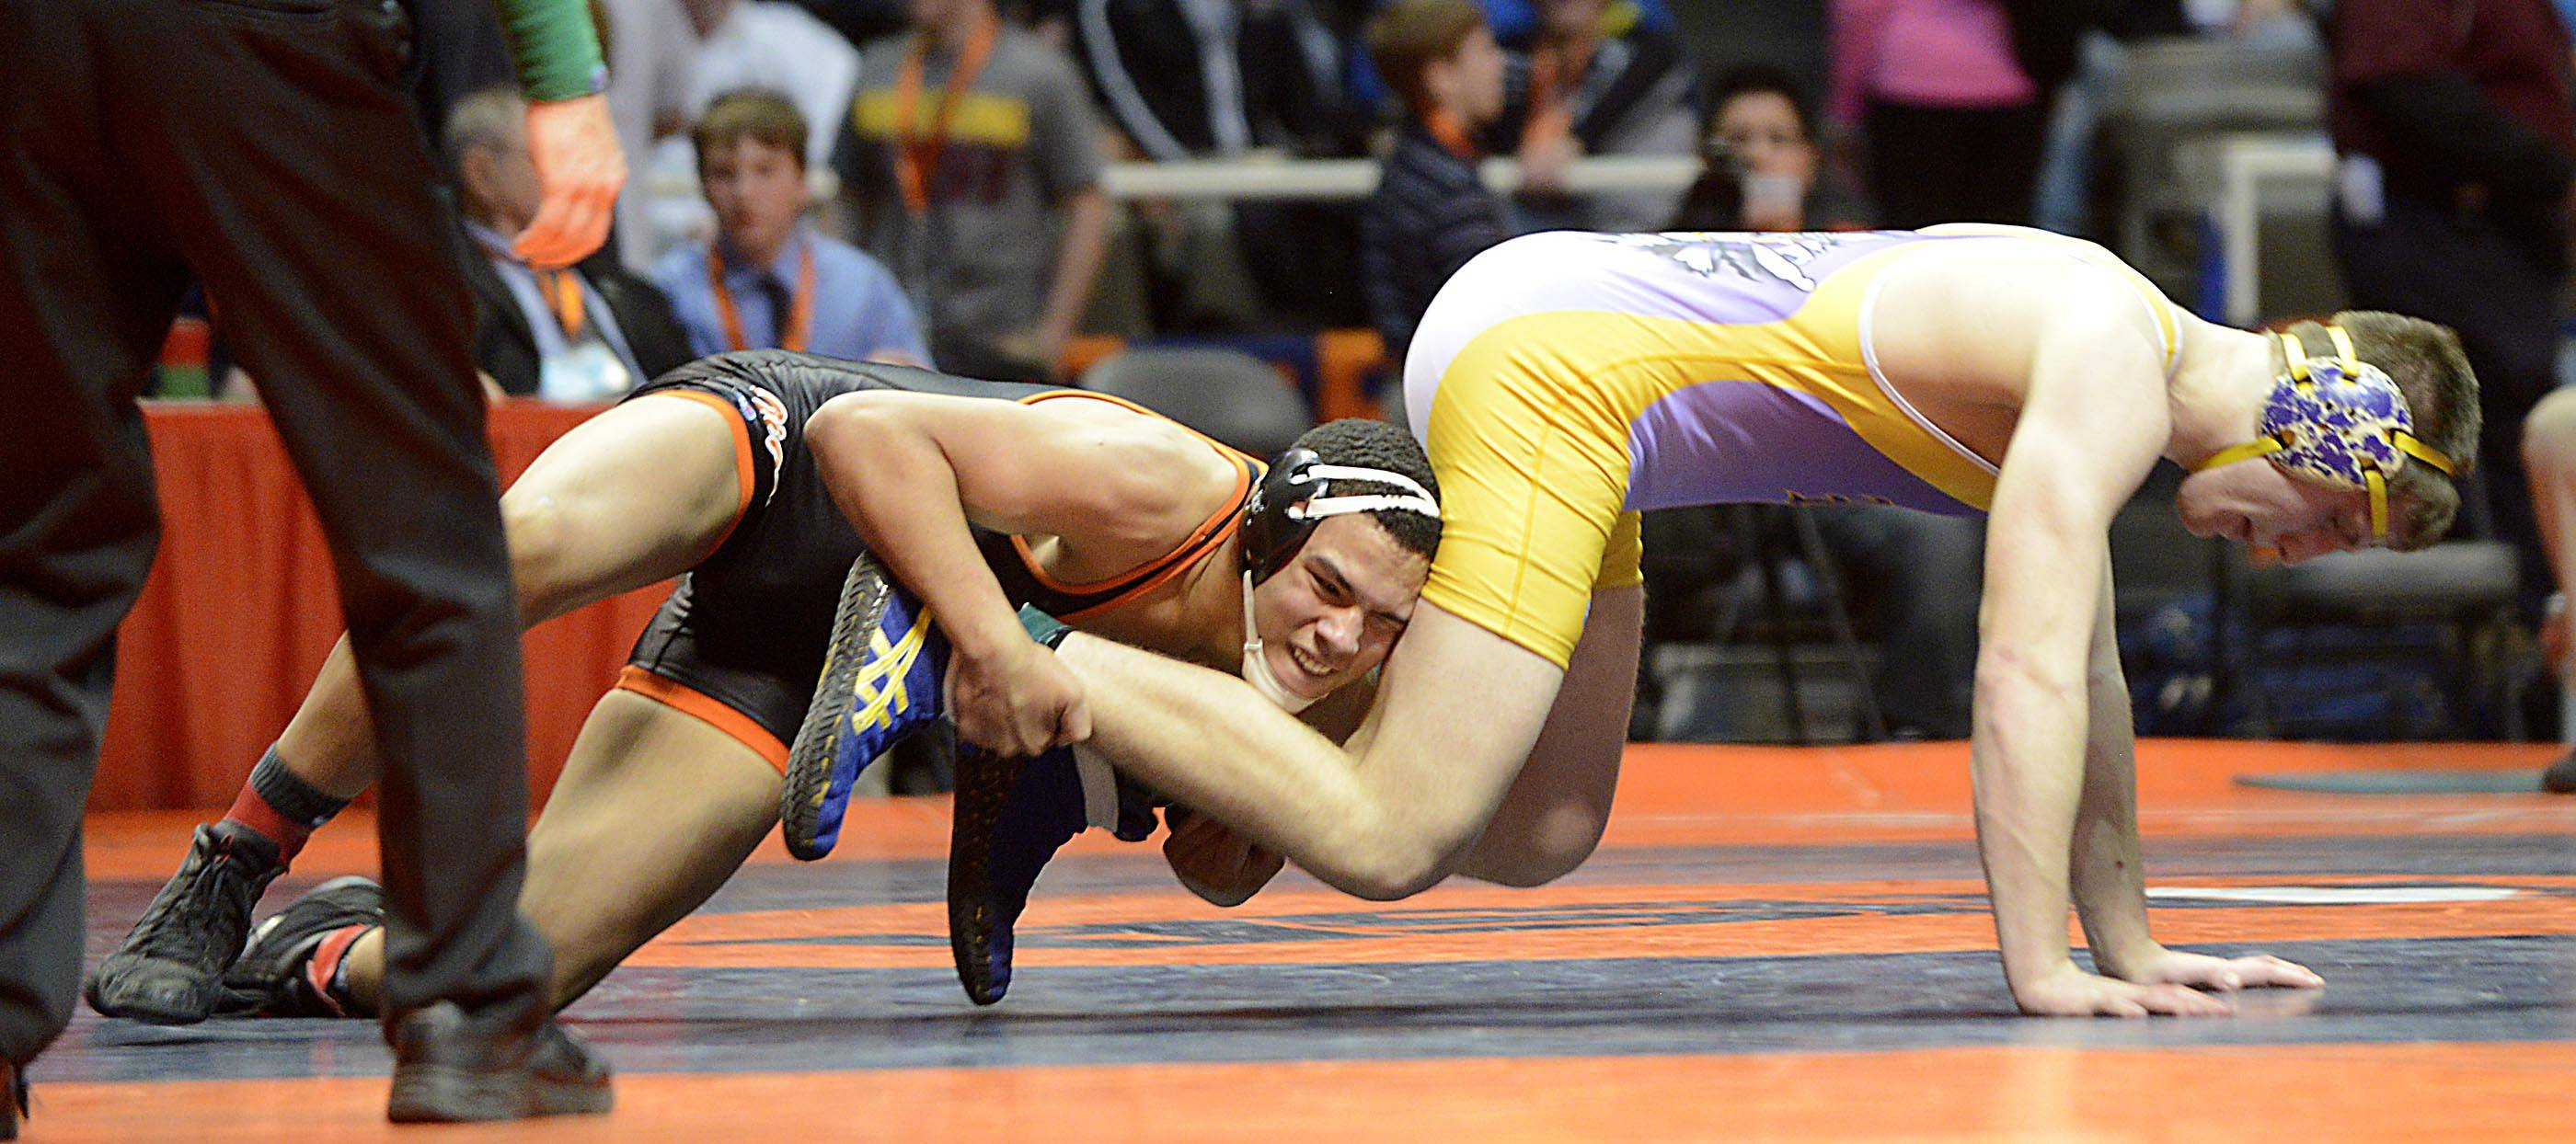 Nate Magiera of Wauconda High School, right, competes against Romeo McKnight of Crystal Lake Central High School Friday in the 220-pound weight class semifinals of the wrestling IHSA Class 2A state tournament at State Farm Center in Champaign.